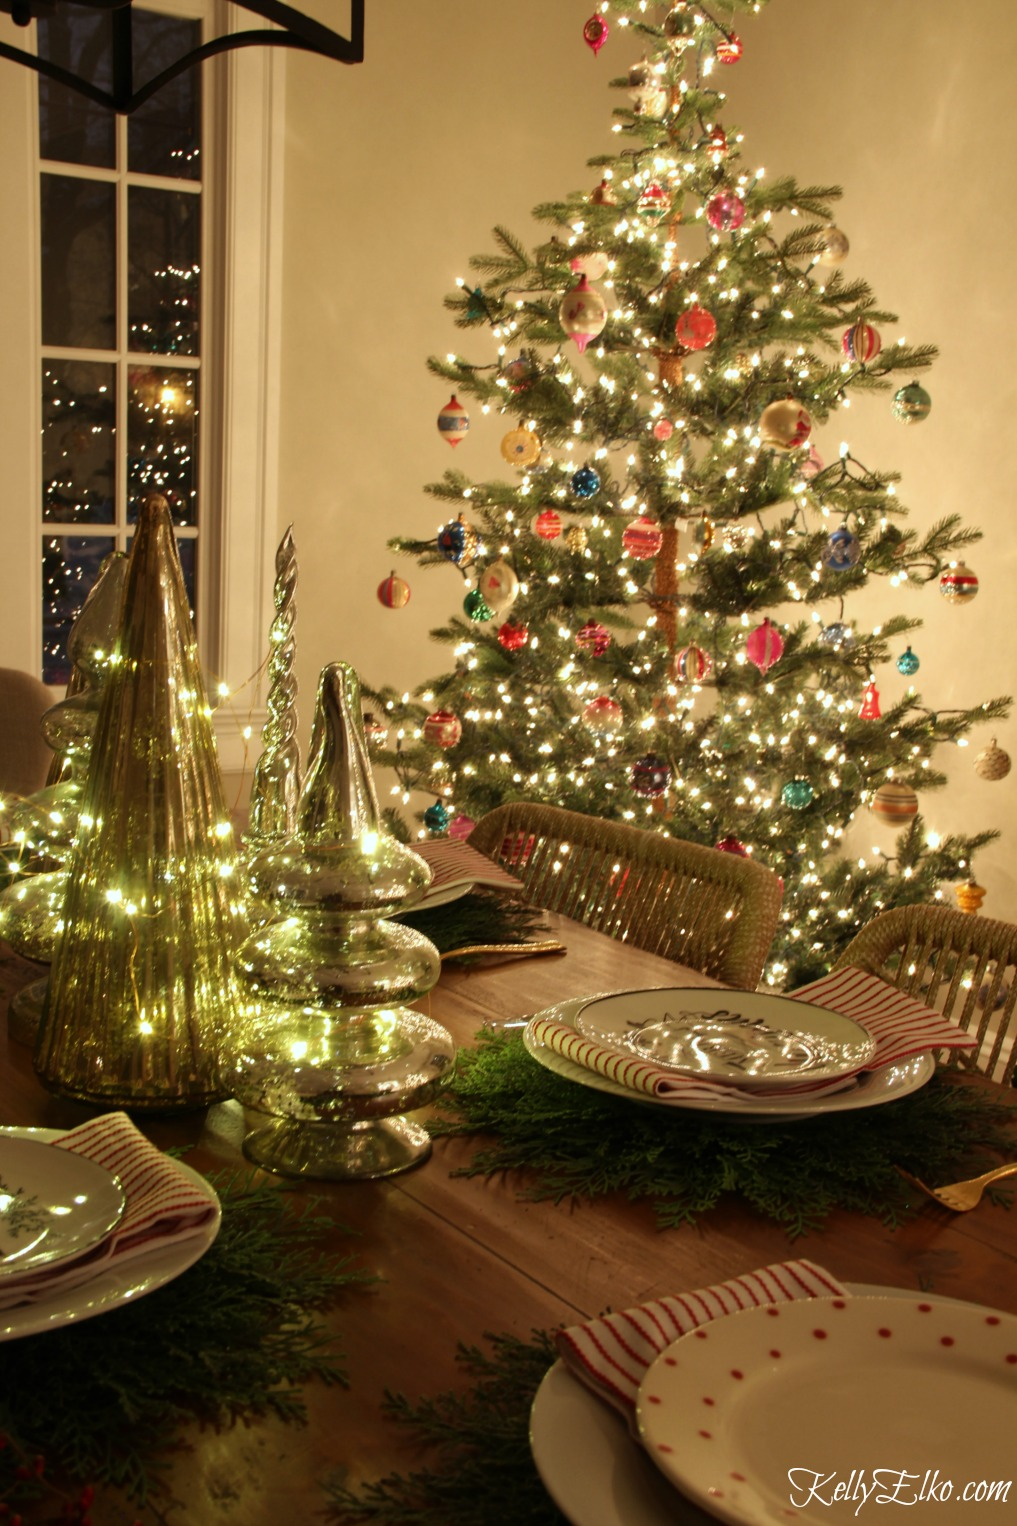 christmas nights tour see 25 of the best christmas homes lit up at night - On This Night On This Very Christmas Night